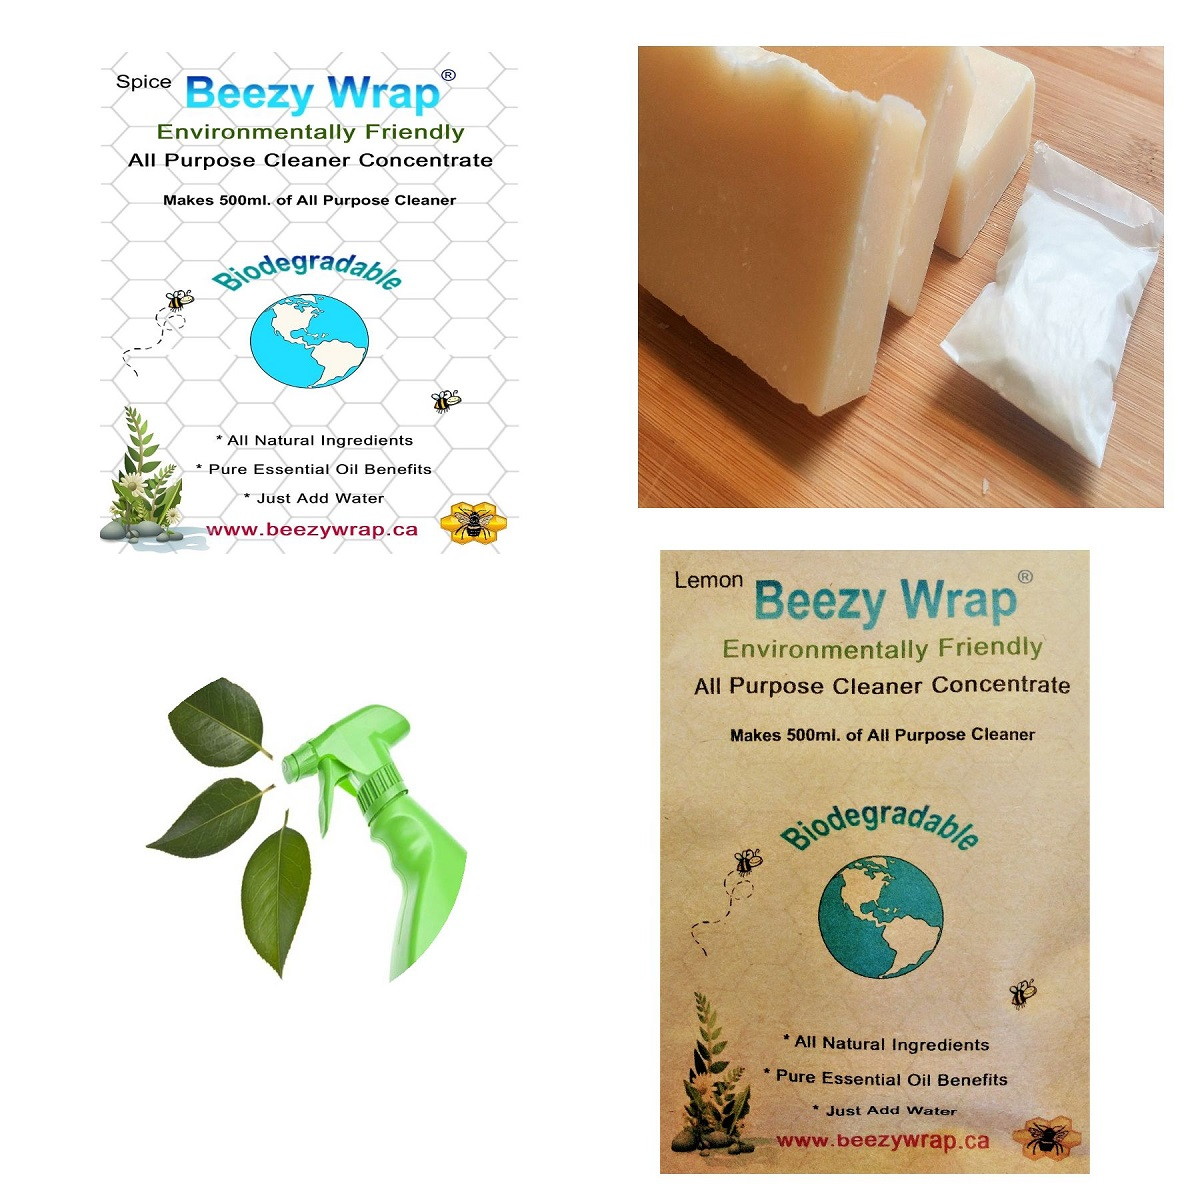 Eco Friendly Dish Soap Beezy Wrap Solid Dish Soap and Eco Friendly All purpose Cleaner Concentrate